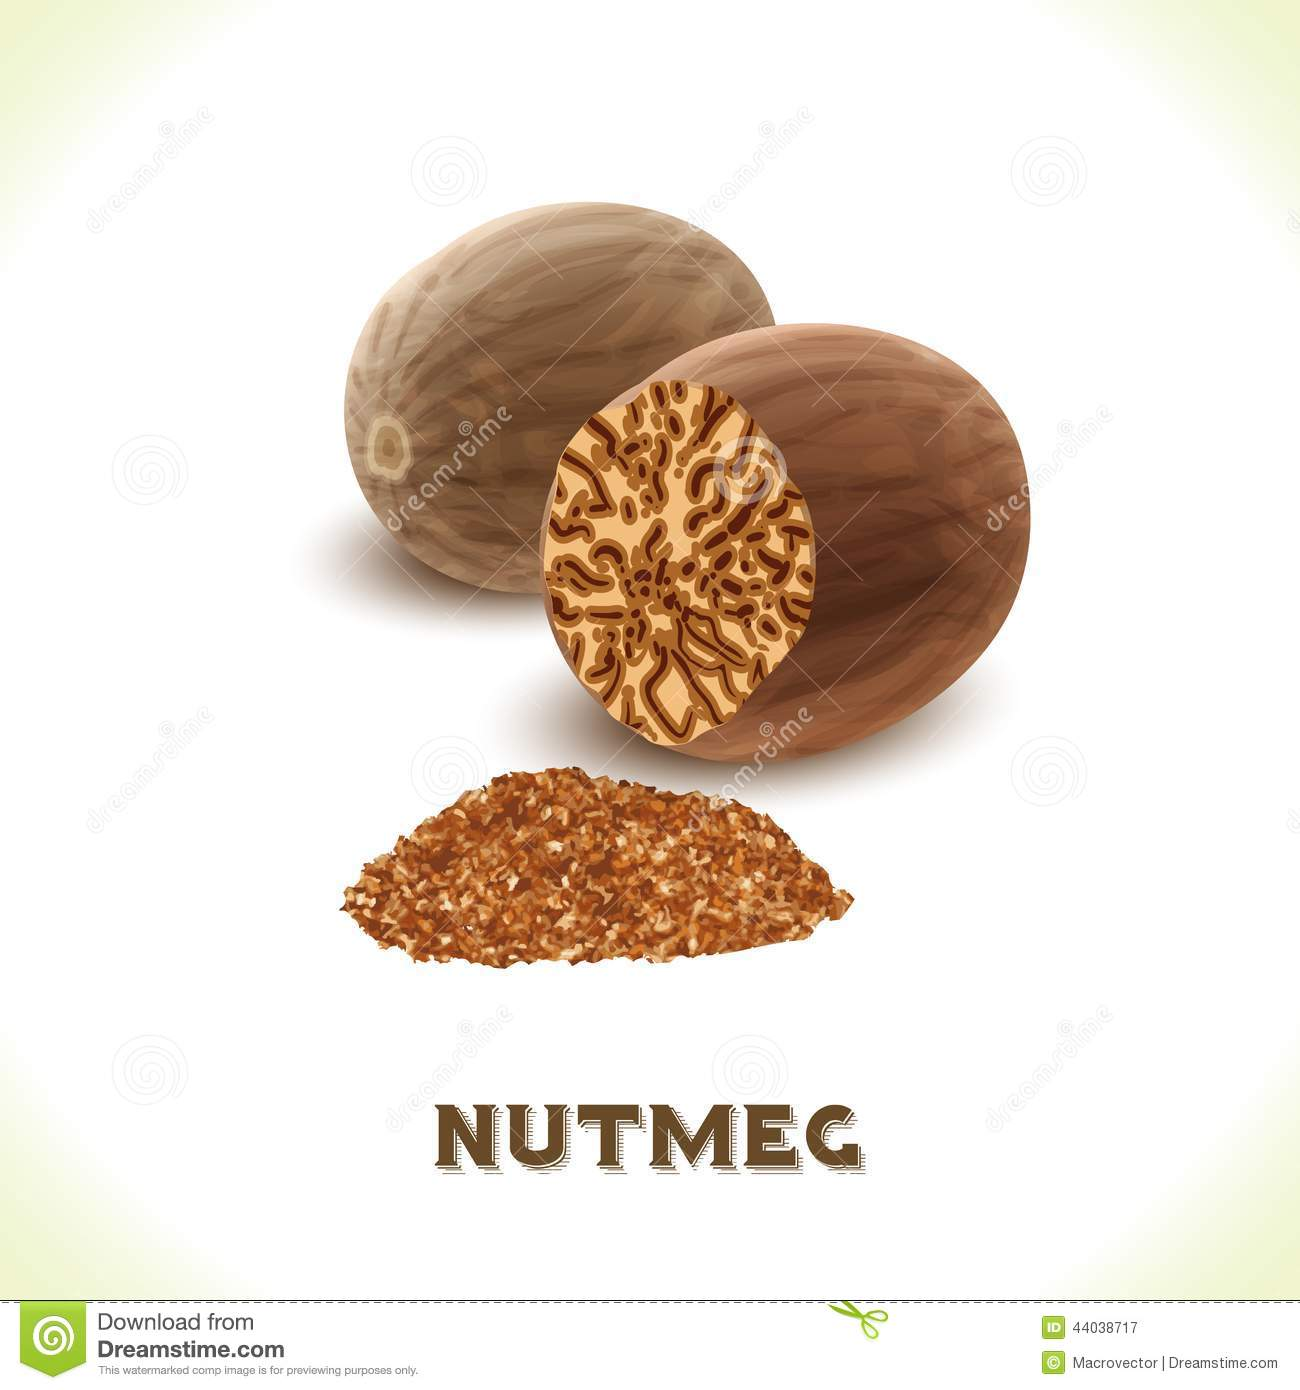 Nutmeg: sweet, aromatic and nutty